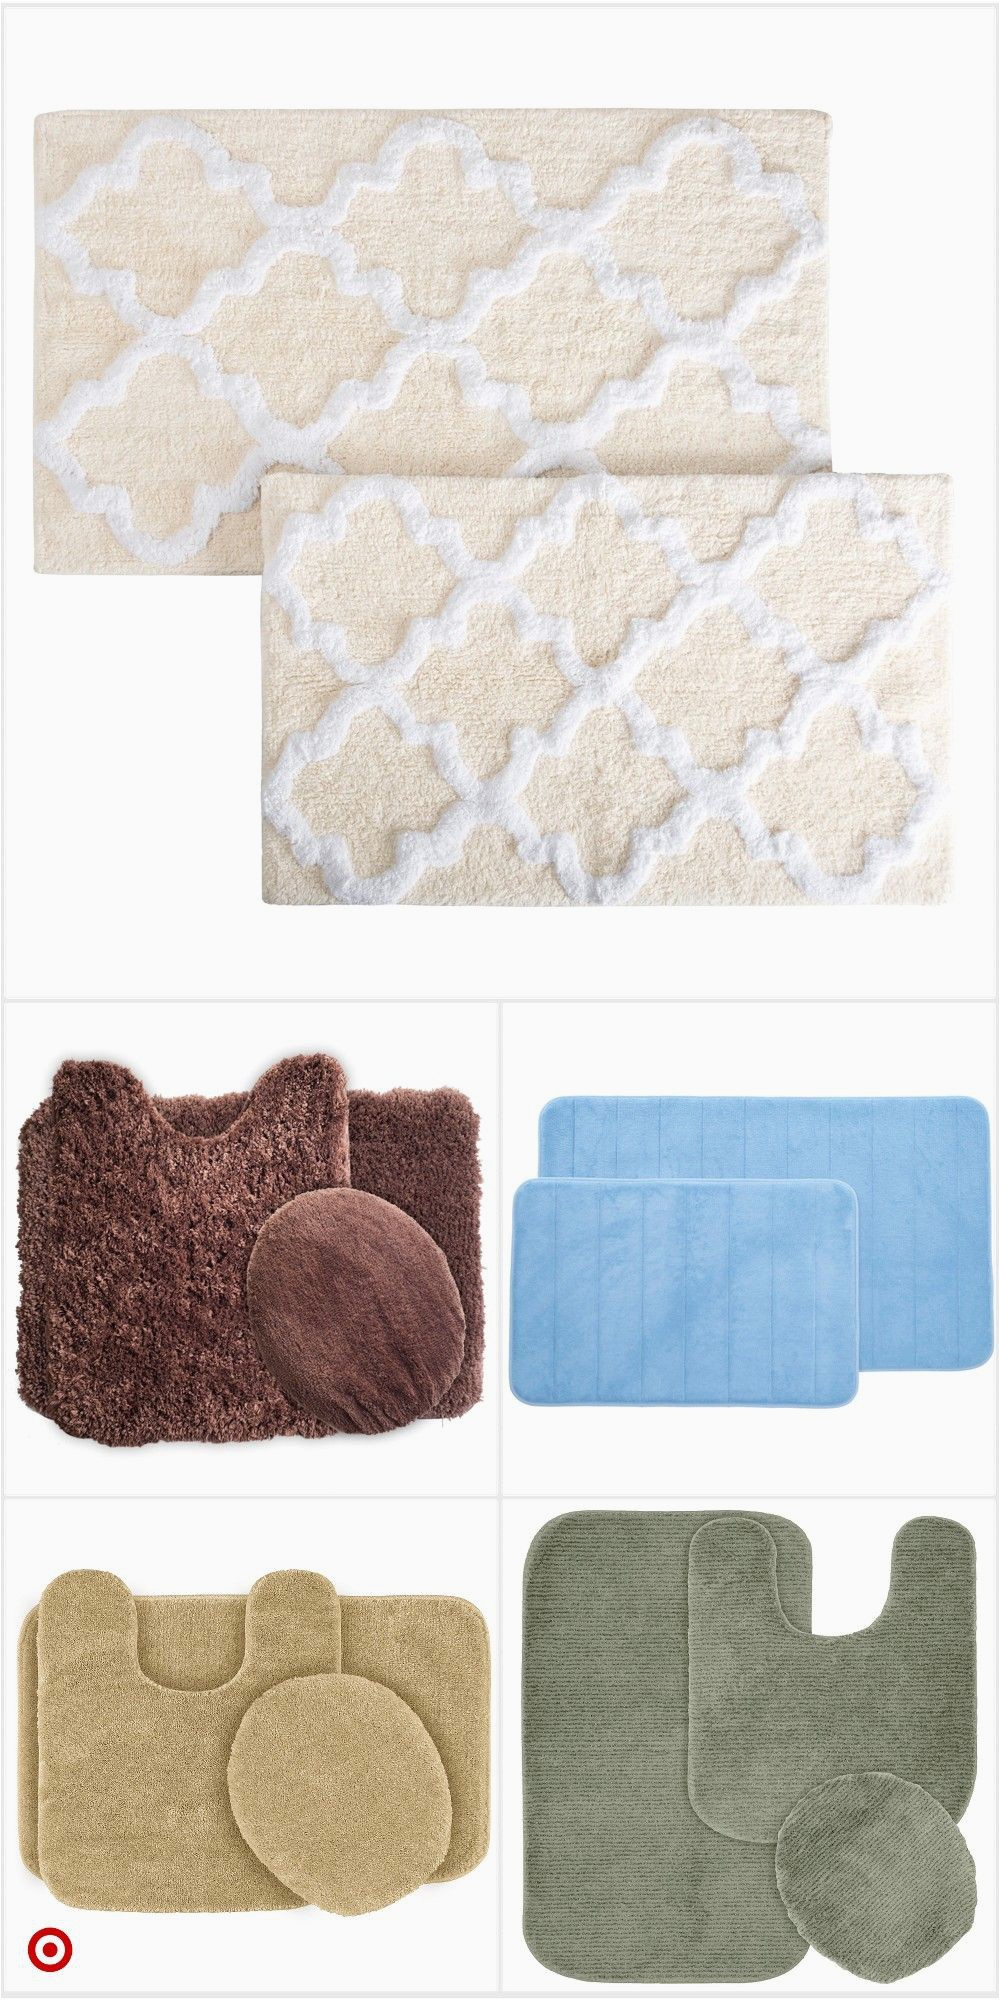 Target Bath Mats and Rugs Shop Tar for Bath Mat Set You Will Love at Great Low